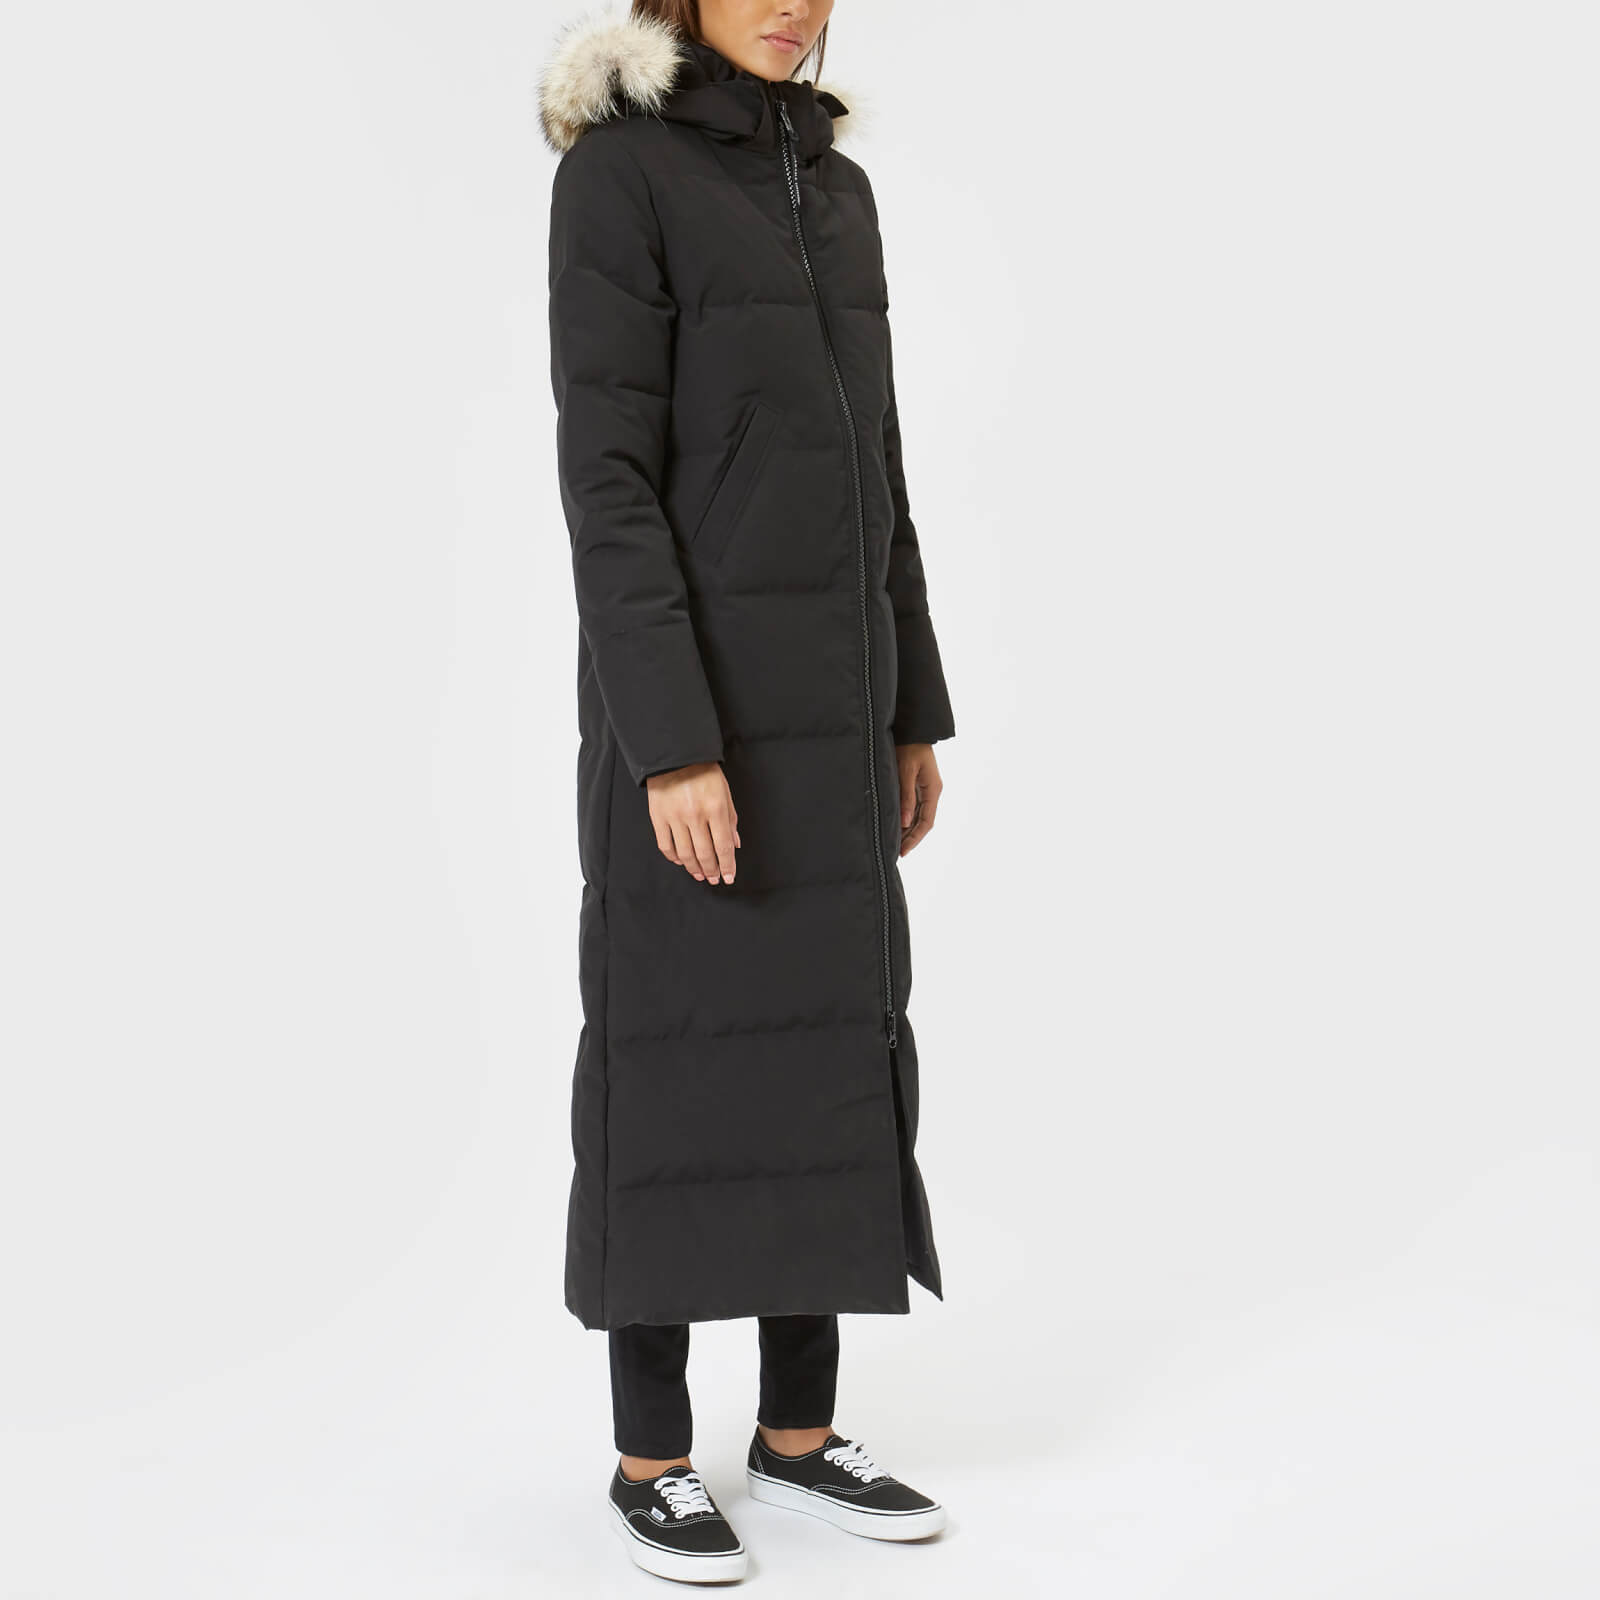 33a72310fd1 Canada Goose Women's Mystique Parka - Black - Free UK Delivery over £50